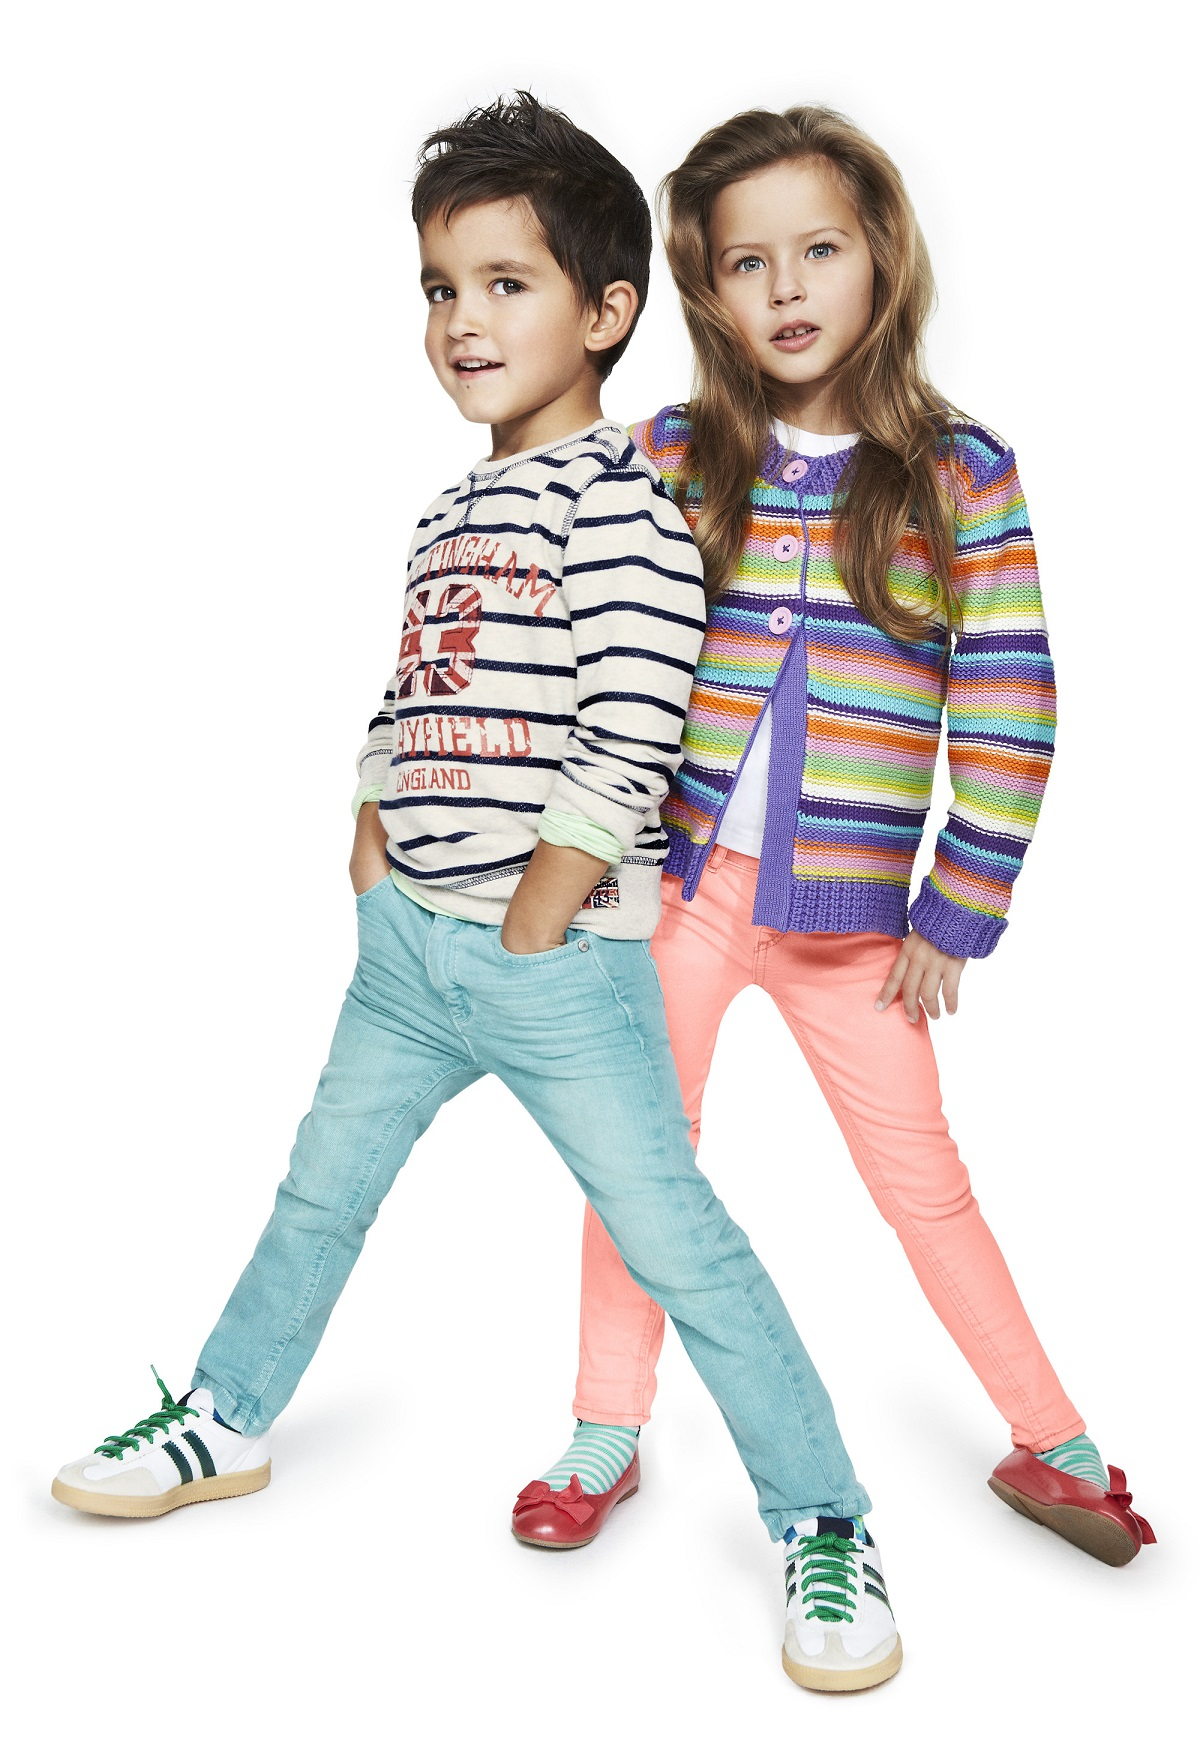 fashion among children easy Easy adjustable kids belts come best for children who face loosen pants the elasticity of the belt suits comfortable to children kids leather belts are very much in among the children fashion world the leather kids belts look cool on both girls and boys wearing jeans trousers or skirts.